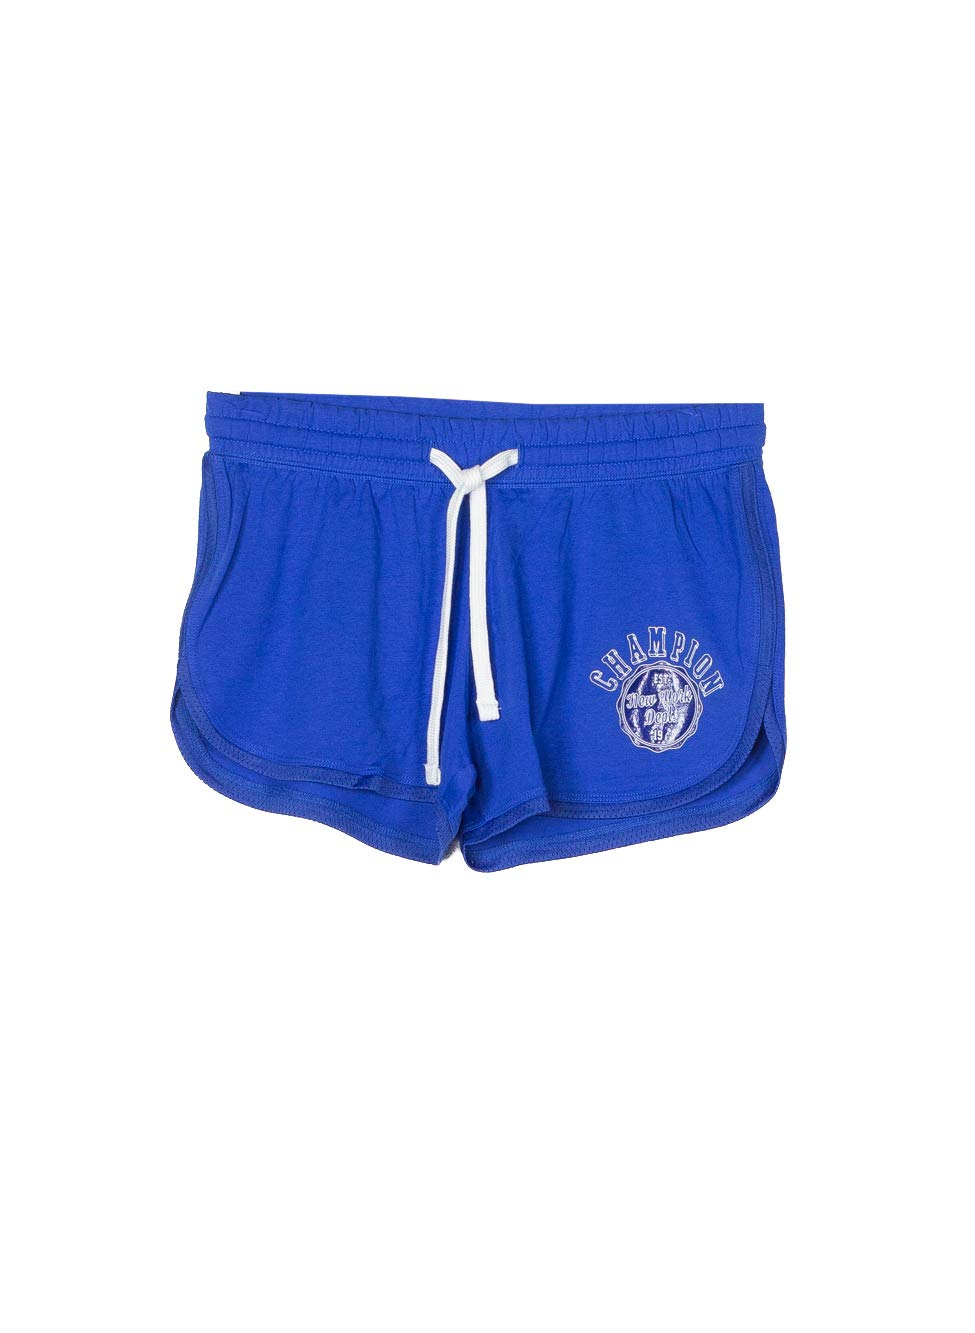 TALLA L. Champion Short Mujer Light Cotton Jersey Gr.150 Azul Royal (Blue Royal dzb)